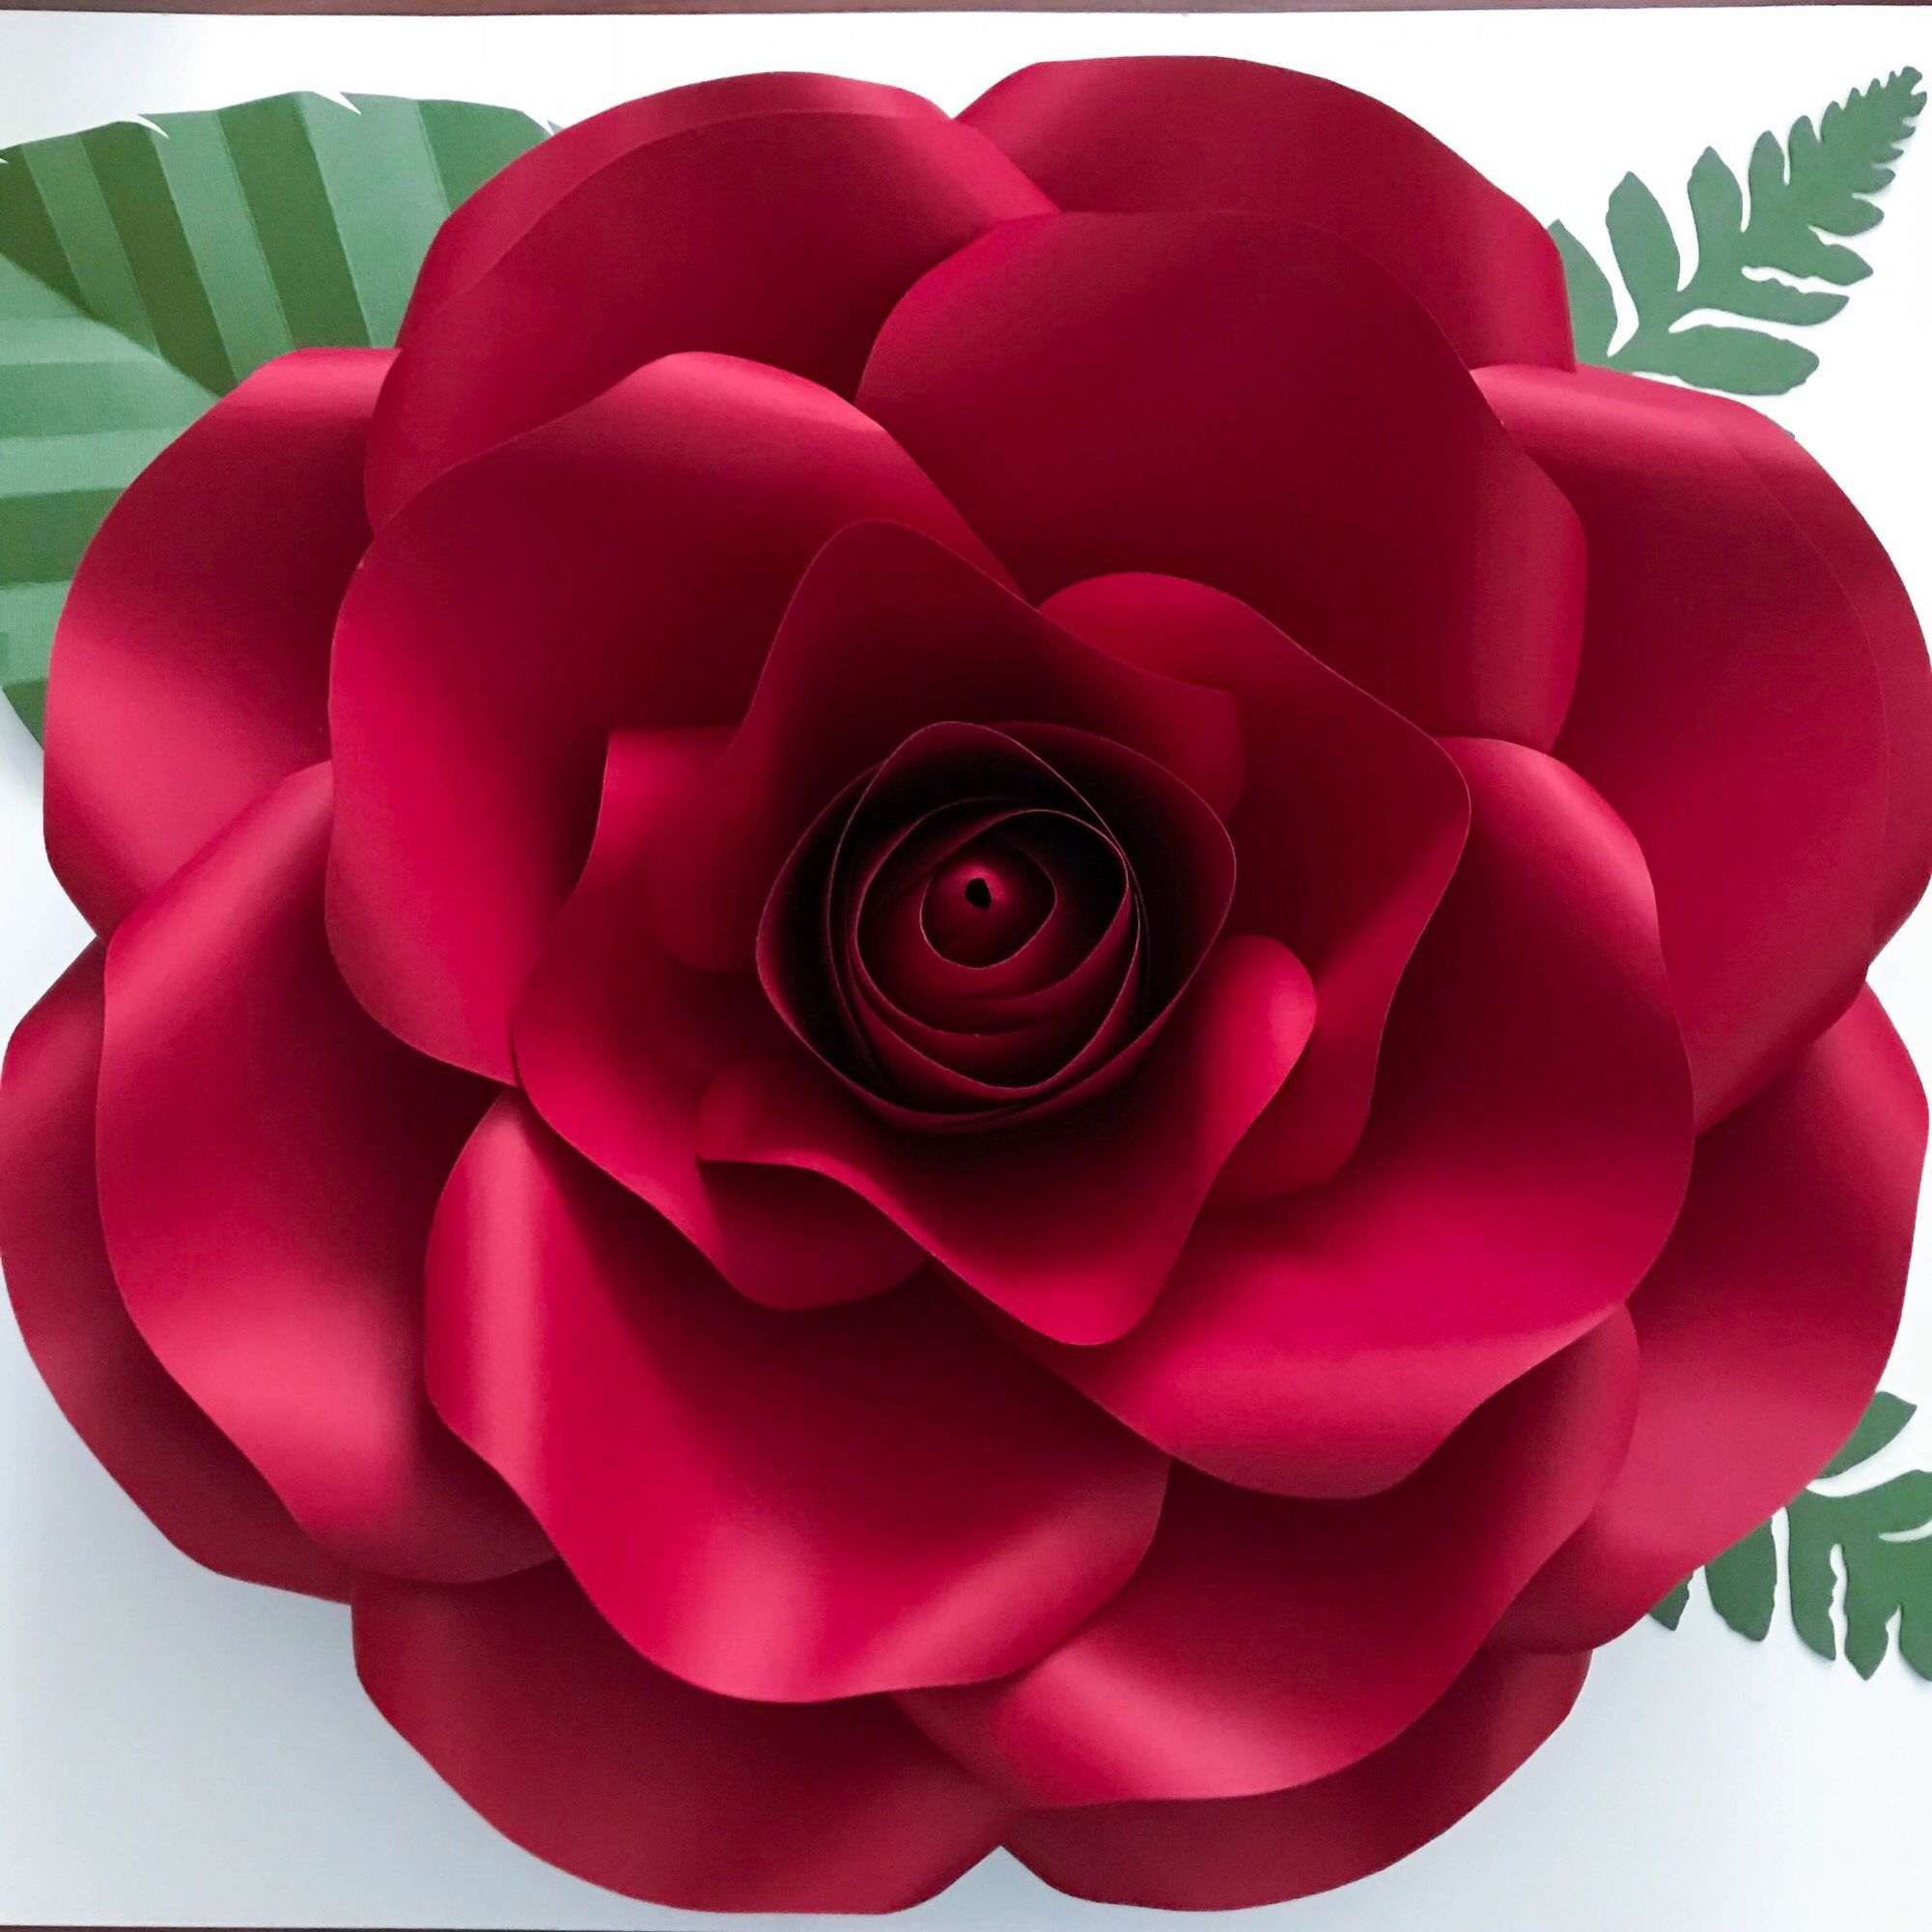 004 Formidable Giant Paper Flower Template Free Download Highest Clarity Full